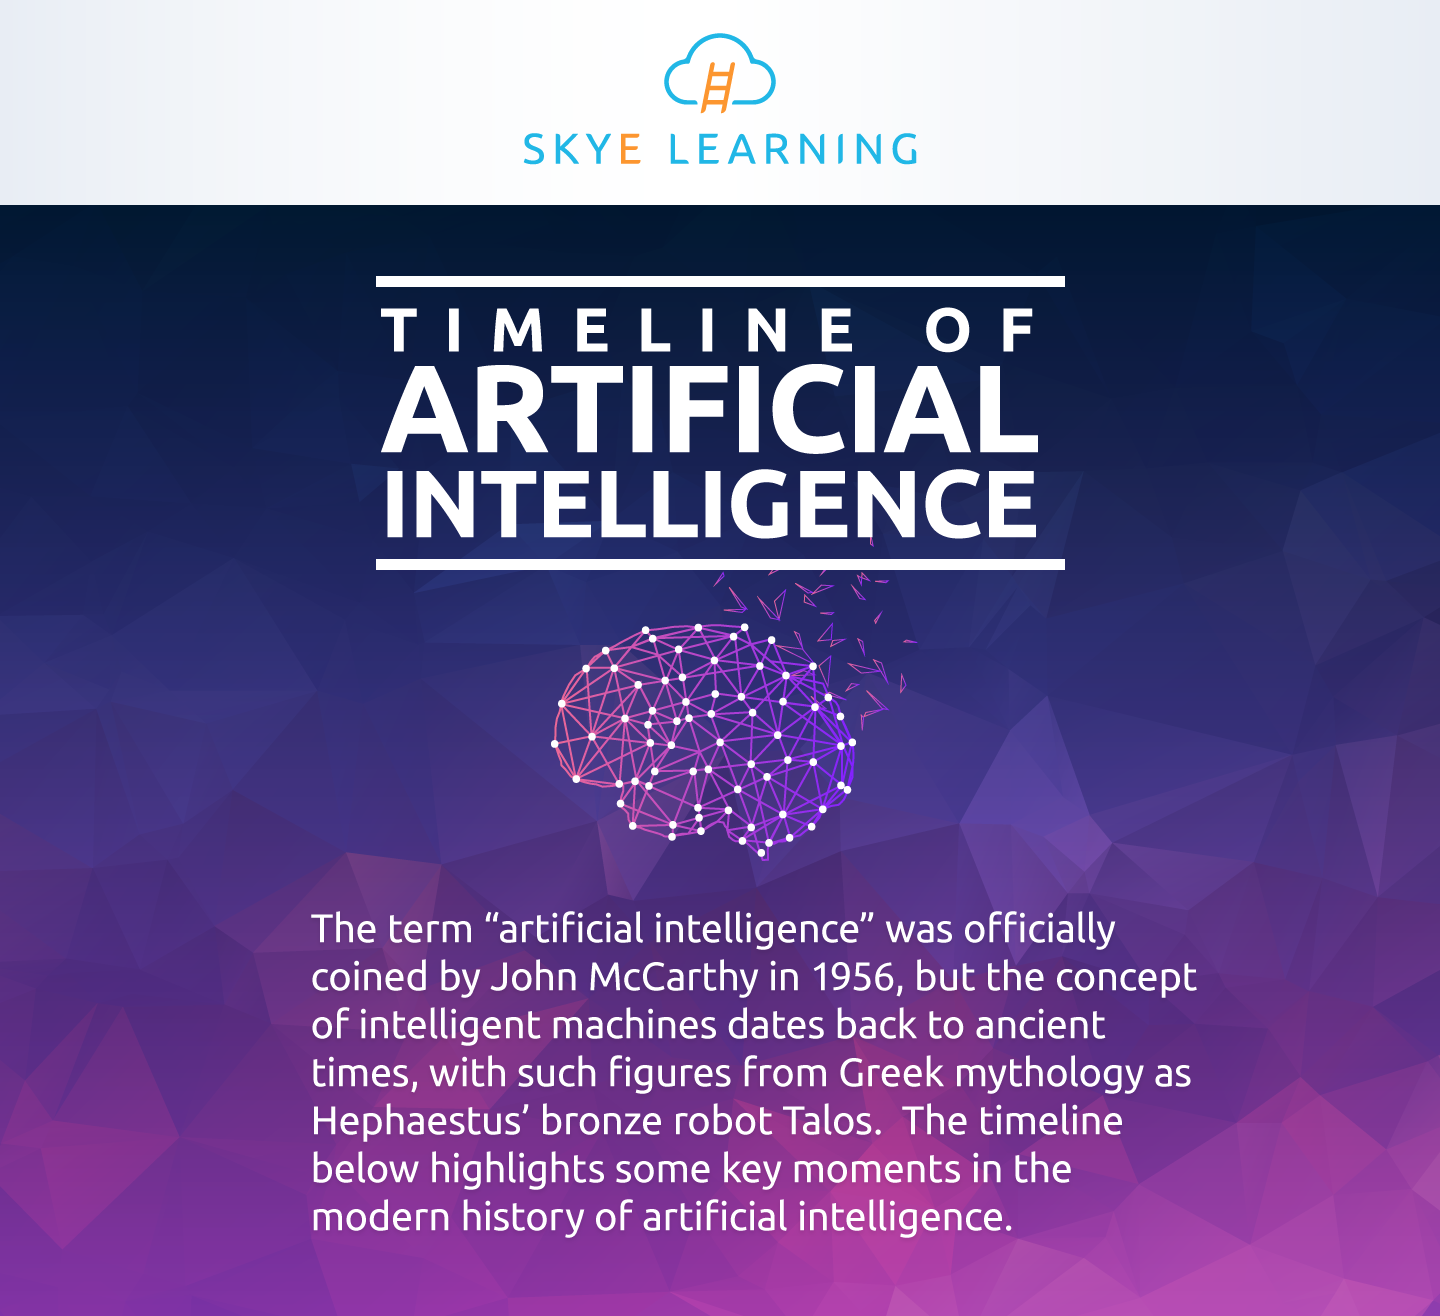 Timeline-of-Artificial-Intelligence-SL-truncated